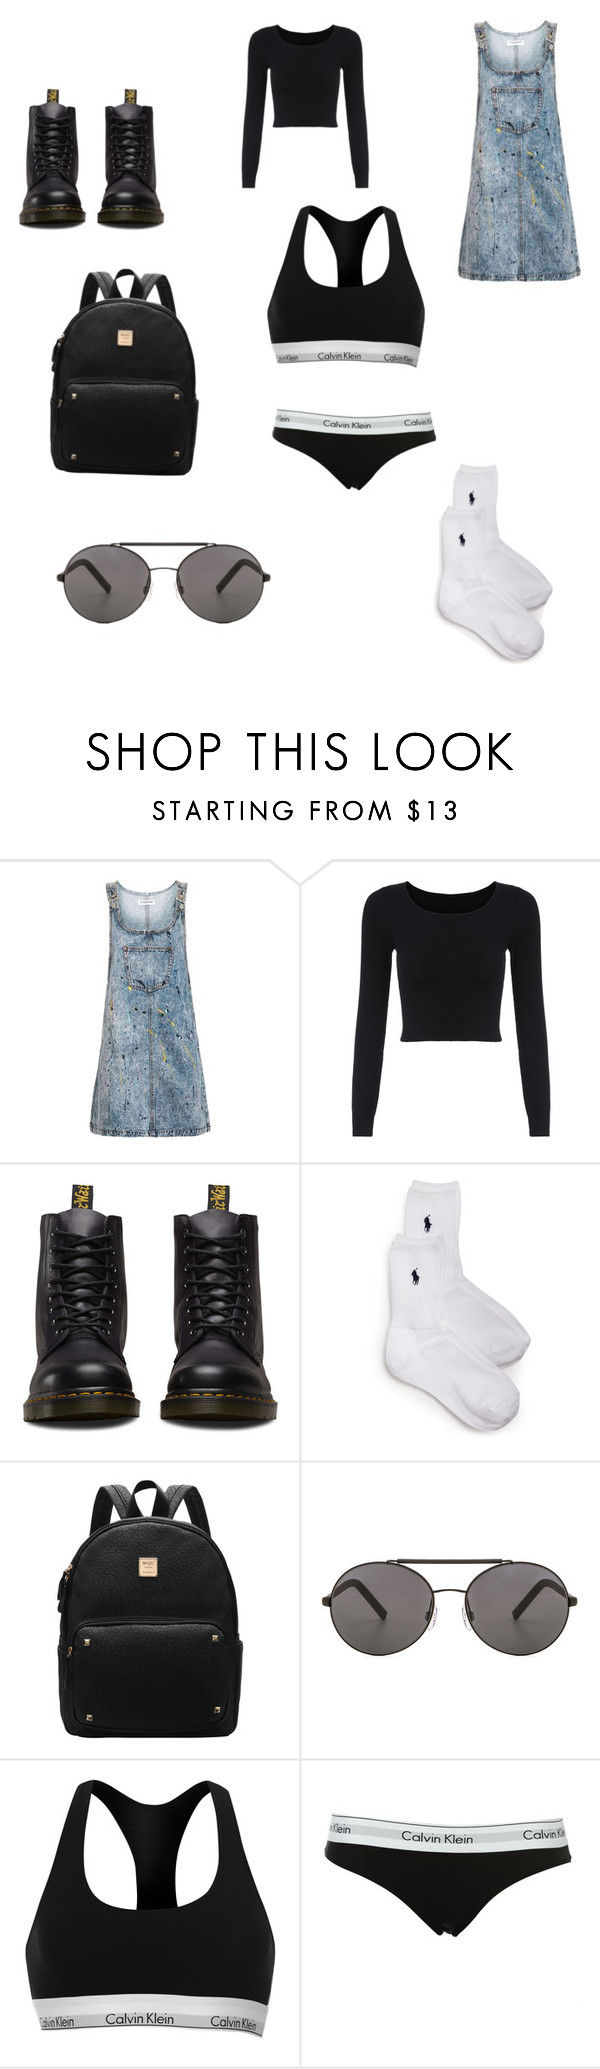 """""""Untitled #581"""" by ashantisherman27798 on Polyvore featuring Topshop, Dr. Martens, Ralph Lauren, Seafolly and Calvin Klein"""